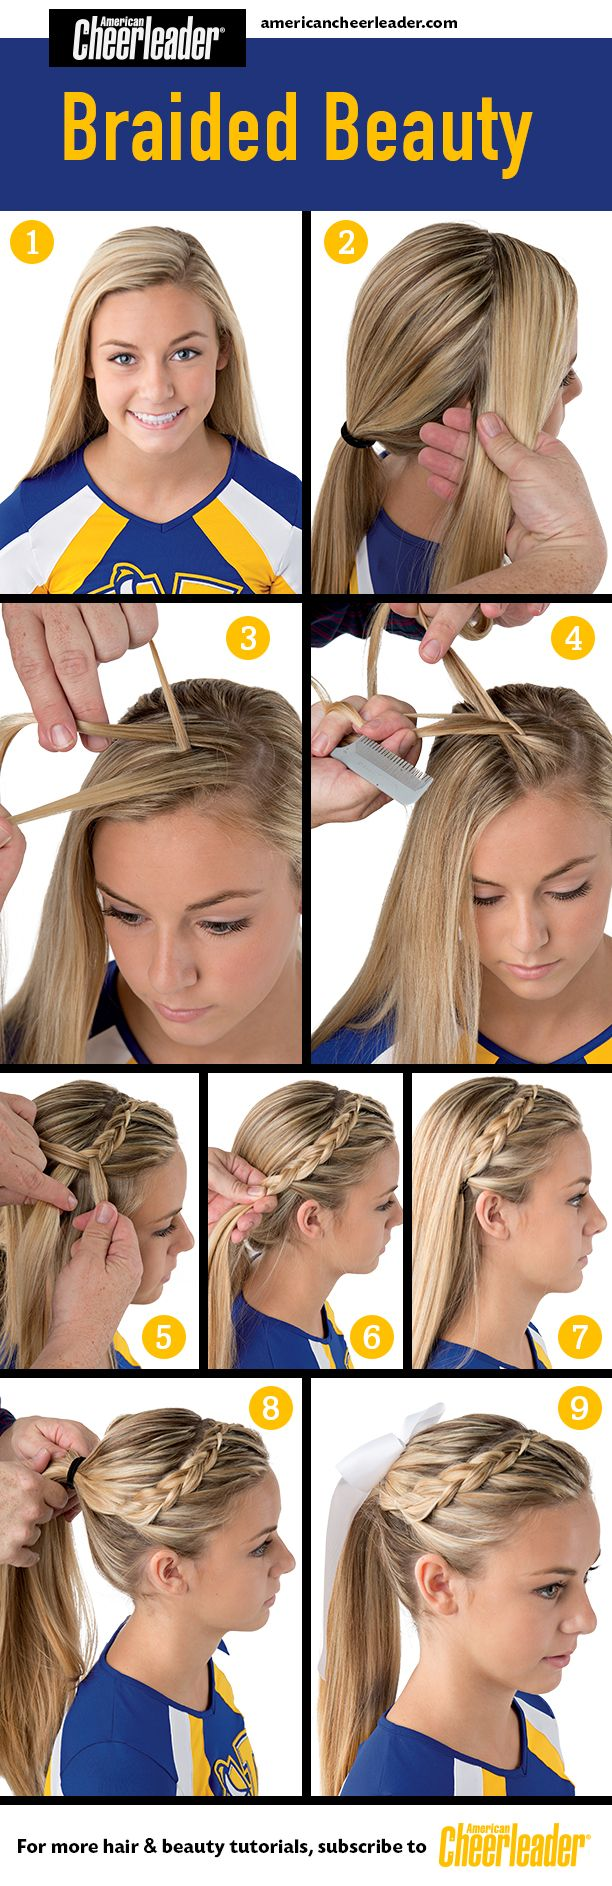 Tremendous 1000 Ideas About Softball Hairstyles On Pinterest Softball Hair Short Hairstyles Gunalazisus